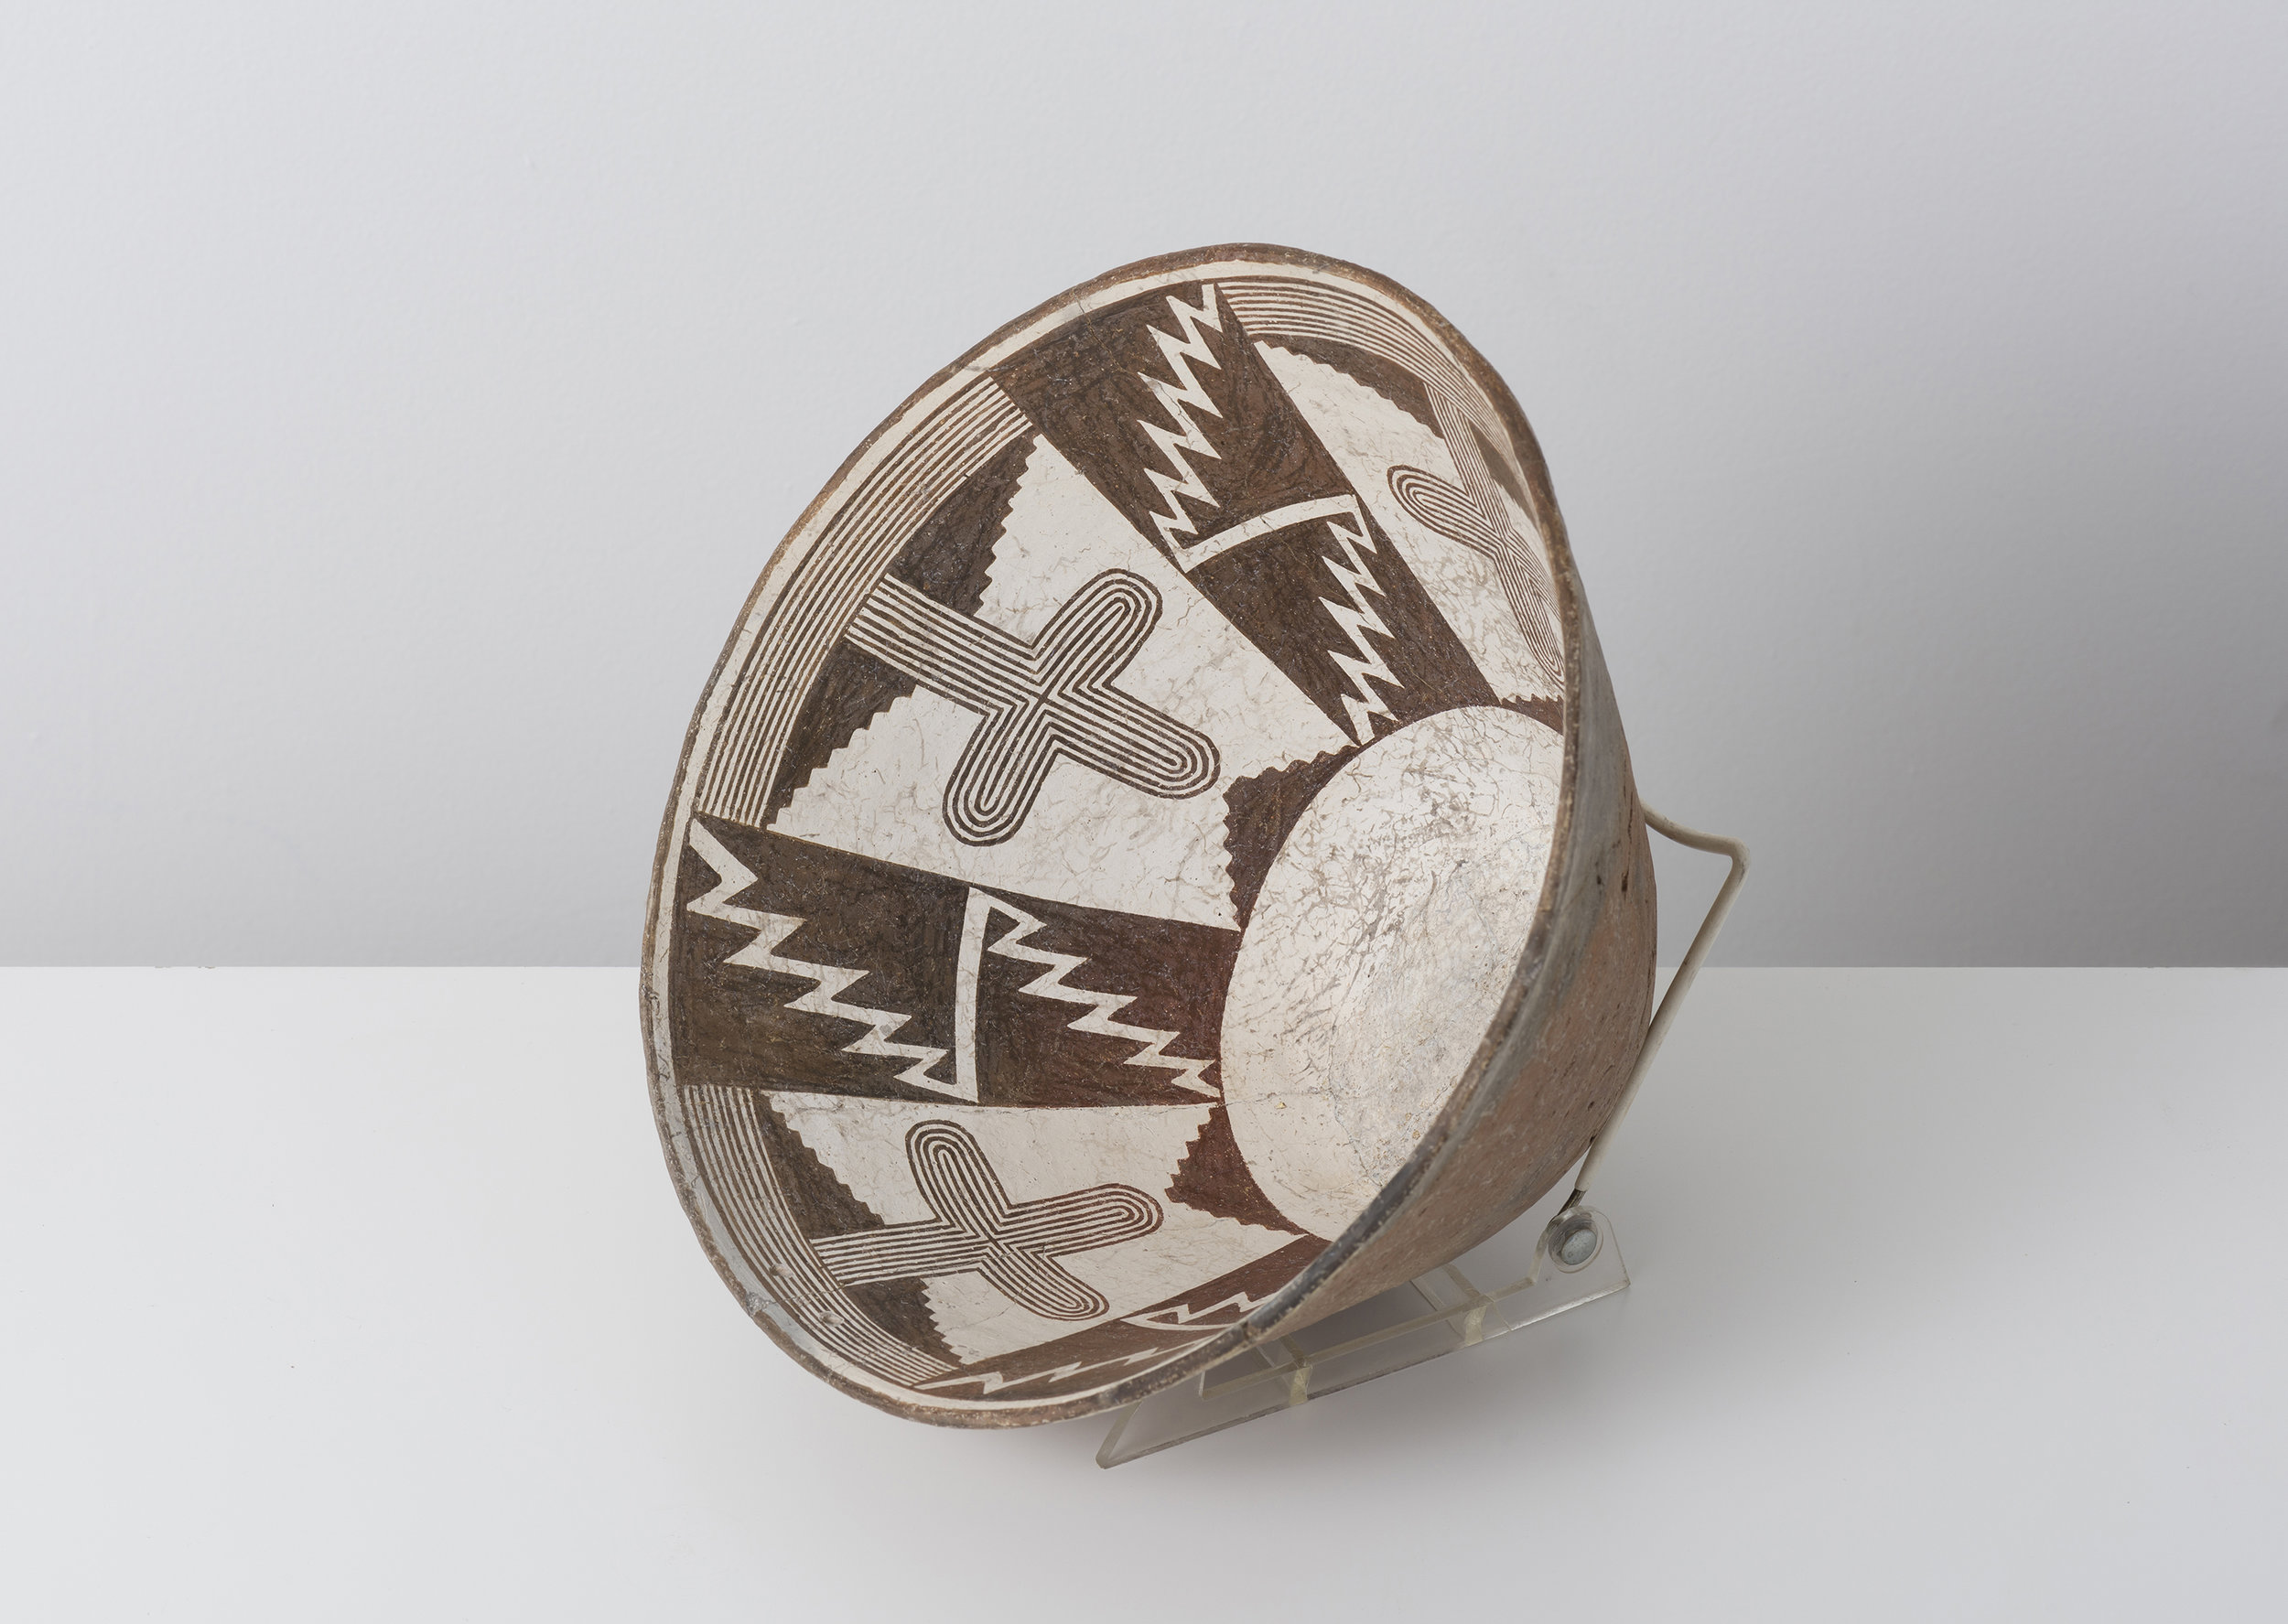 Classic Mimbres Black-on-white  Saguaro cactus and entoptic cross pattern c. 900 - 1000 CE Painted ceramic 11 inches diameter, 6 inches depth